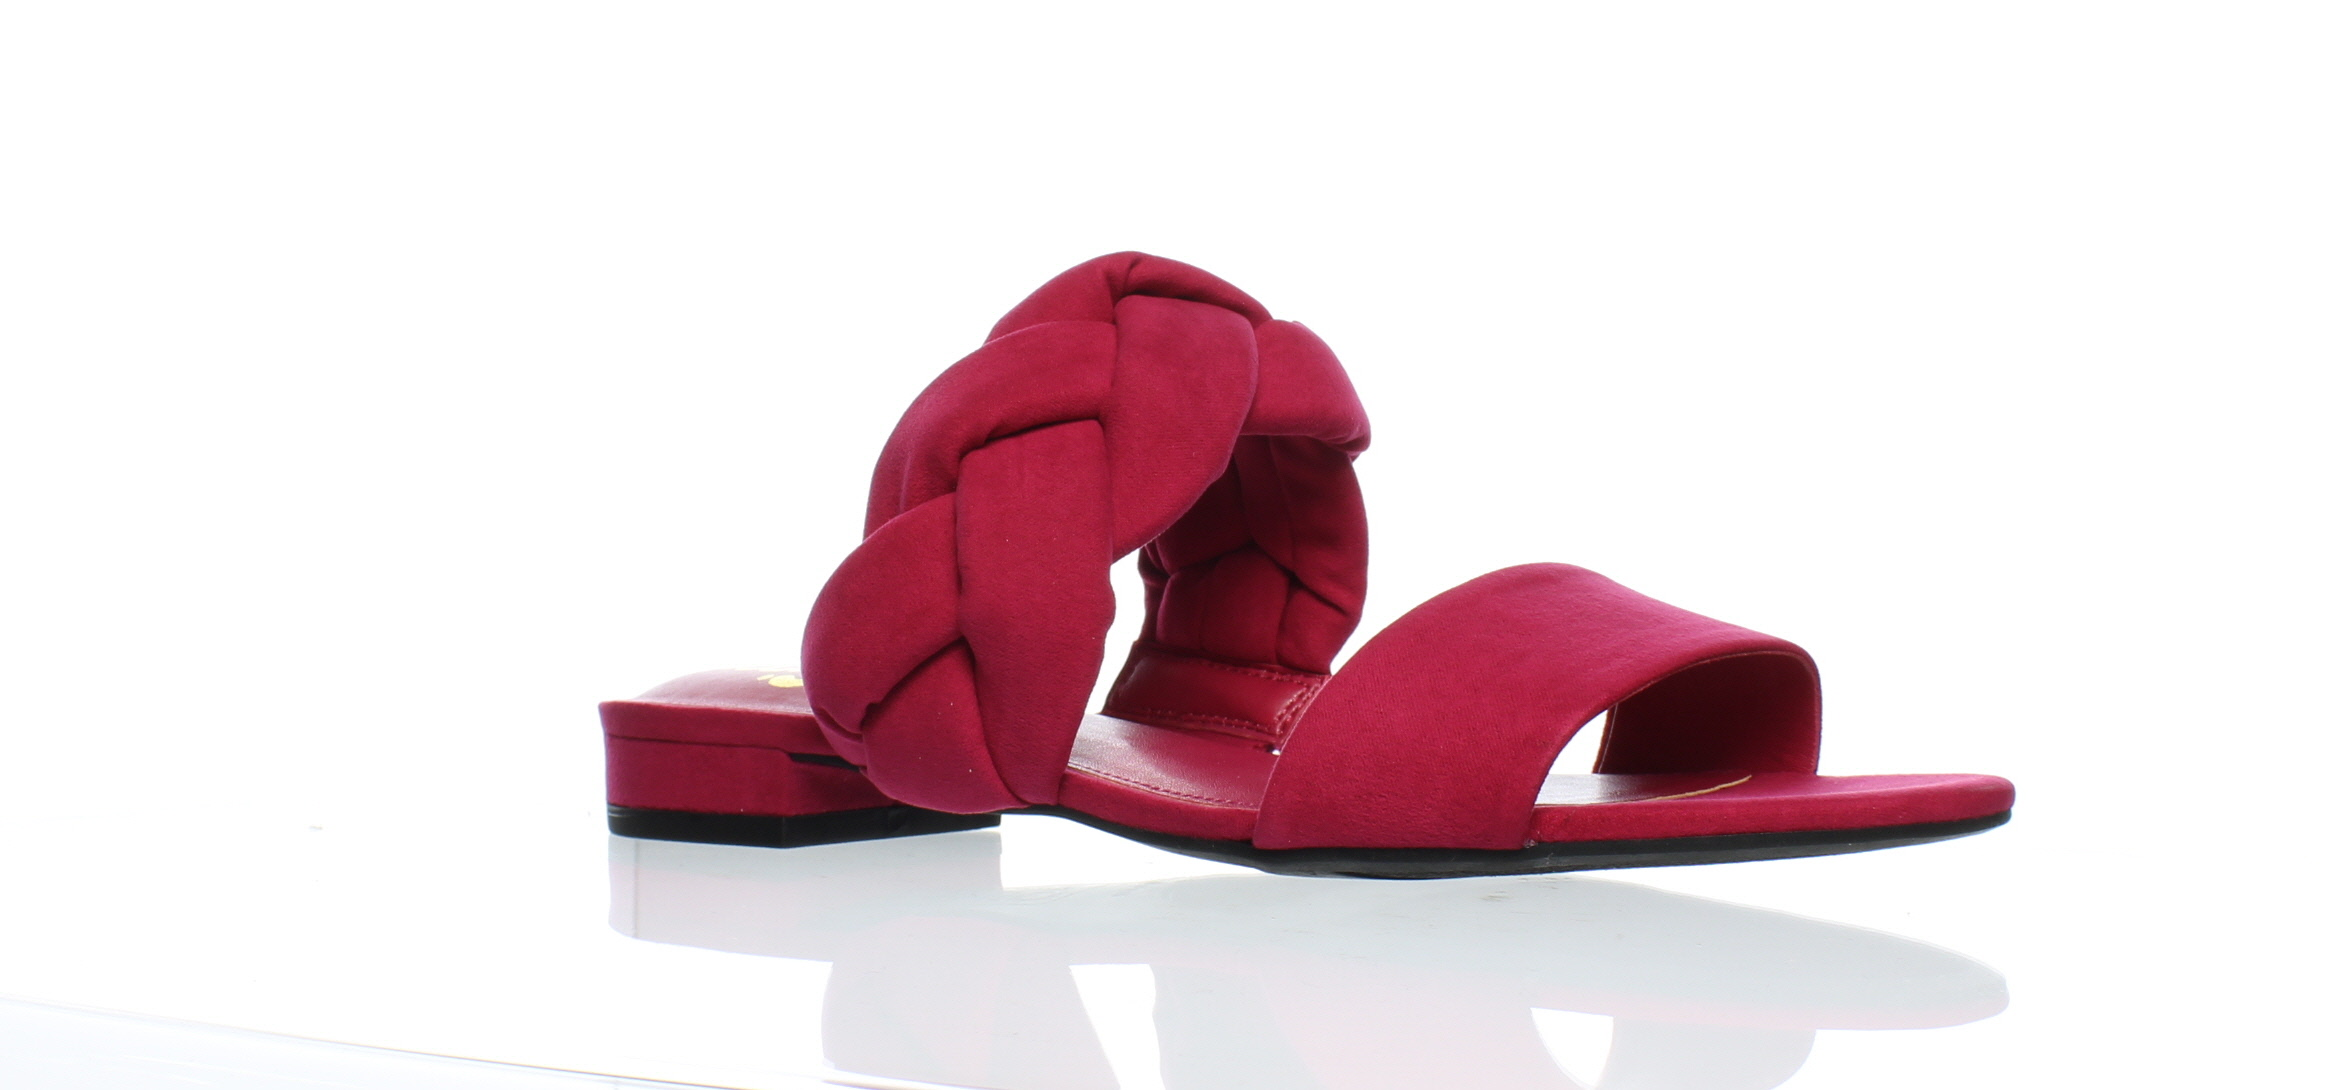 cb47269145b4ae Details about New Circus by Sam Edelman Womens Danielle Pink Magenta Slides  Size 7.5